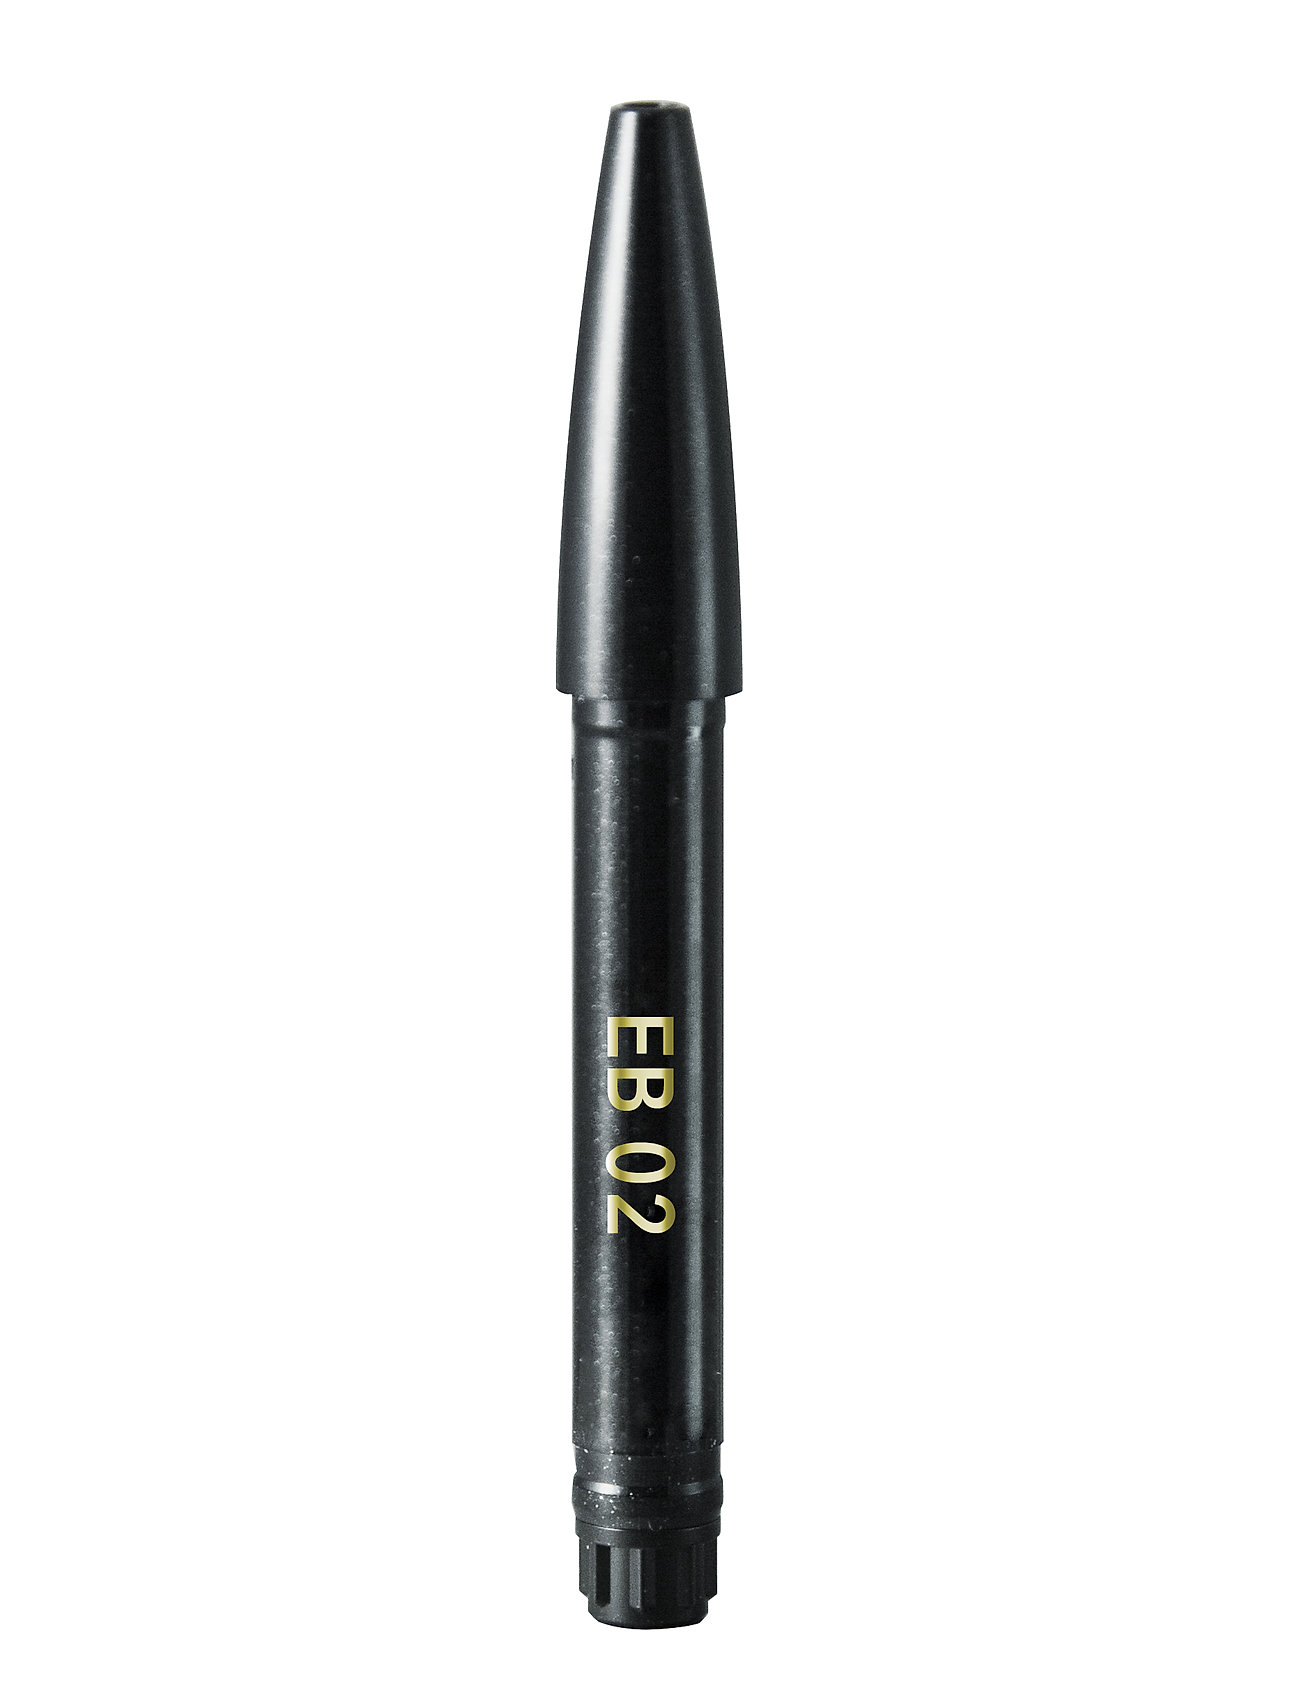 SENSAI Eyebrow Pencil (Refill) EB01 - EB02 SOFT BROWN